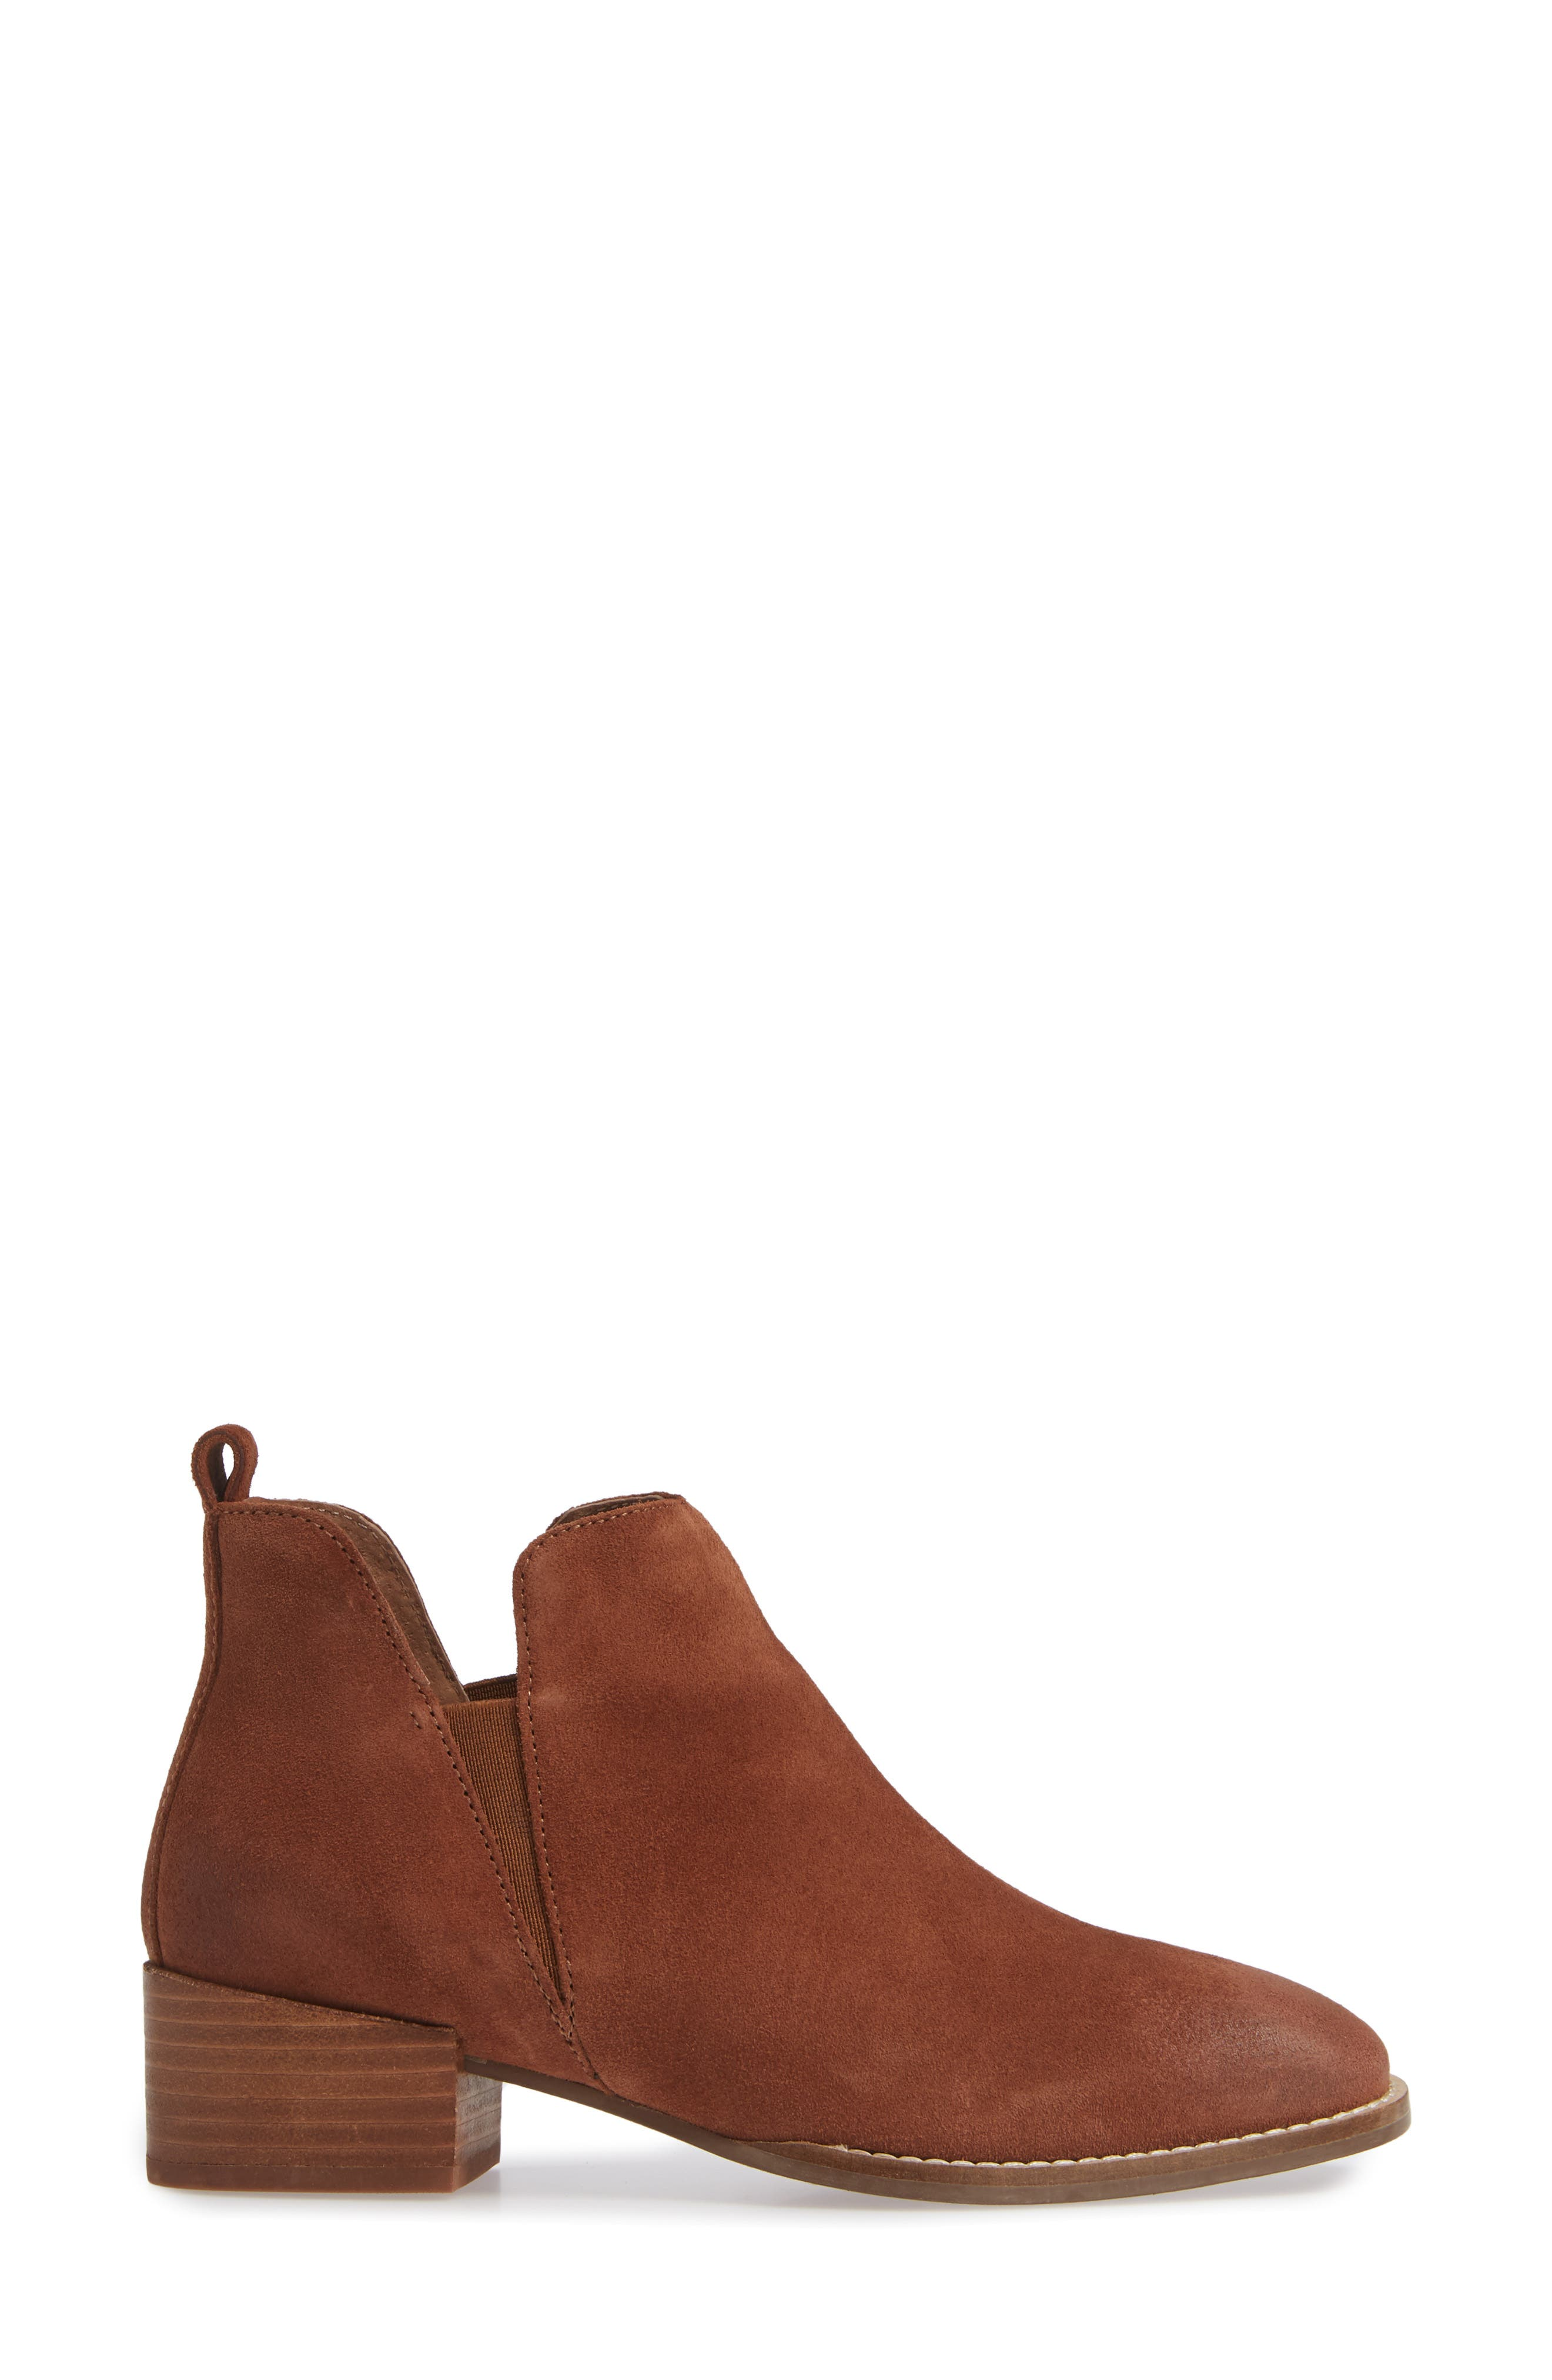 Offstage Boot,                             Alternate thumbnail 3, color,                             COGNAC SUEDE